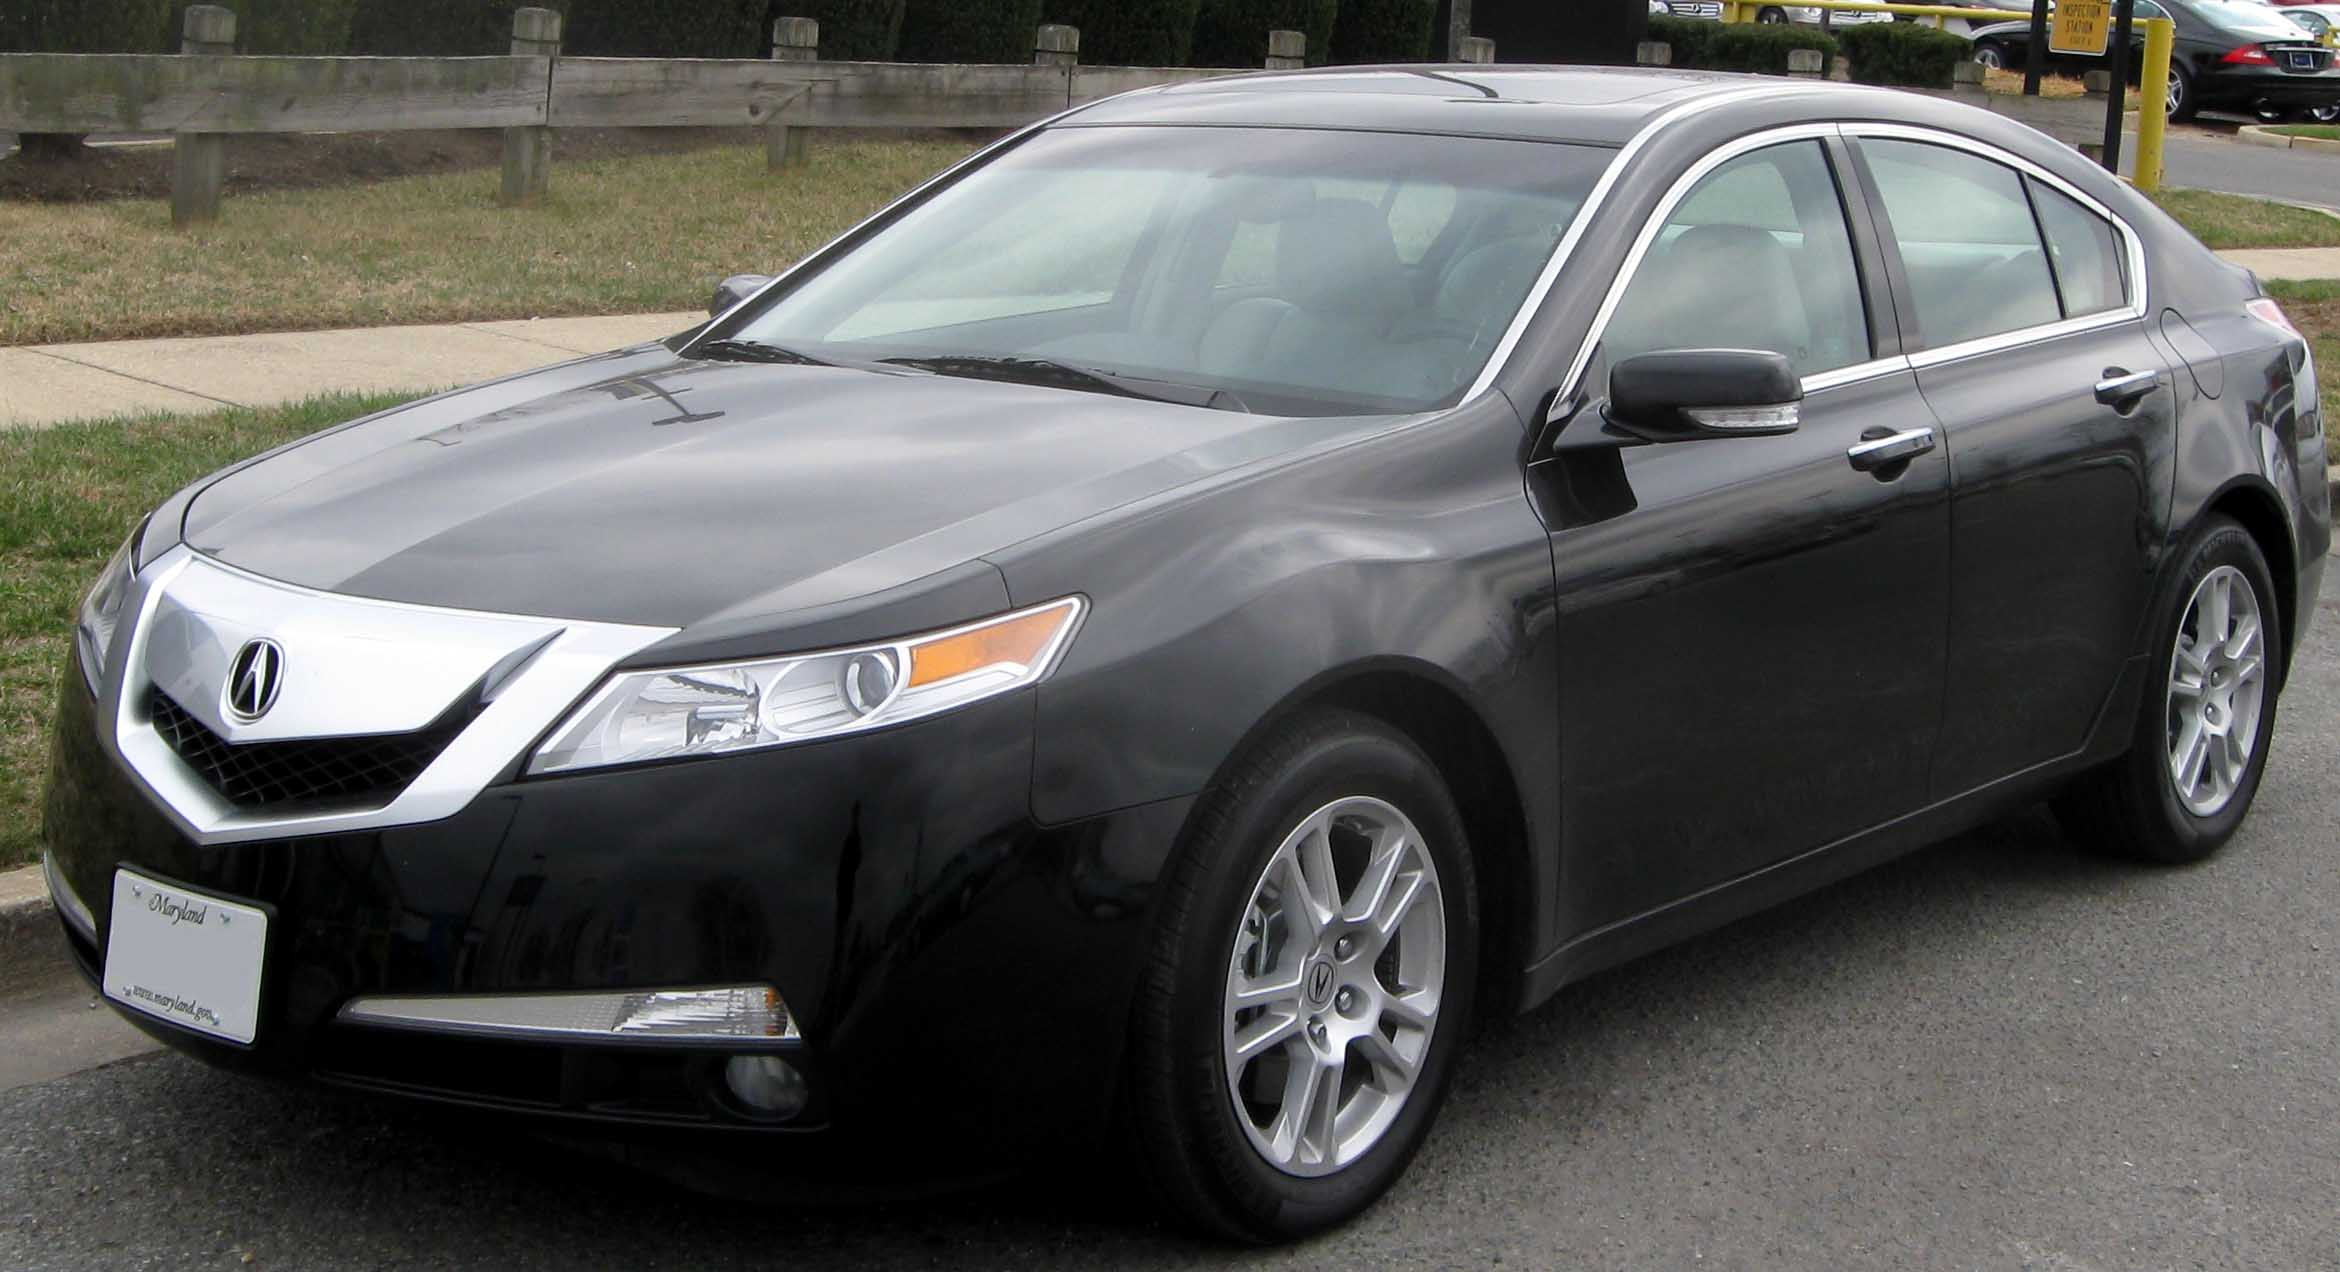 2009 acura tl information and photos zombiedrive